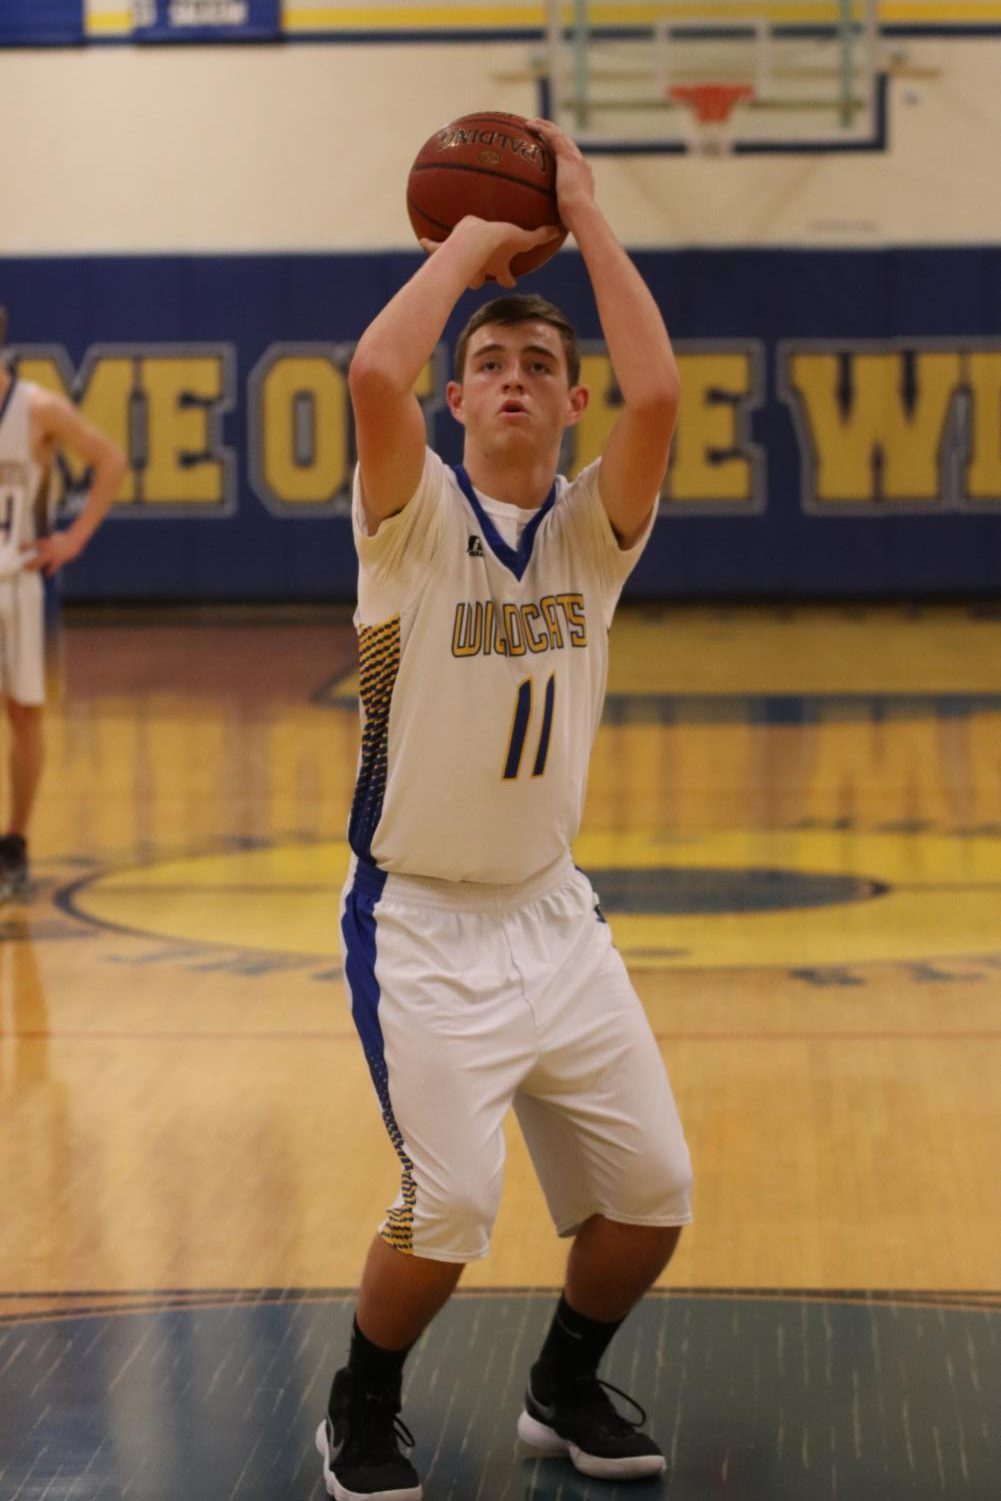 During the blowout victory for the TUHS boys basketball team, Blake Smith shoots free-throws to contribute to their win.